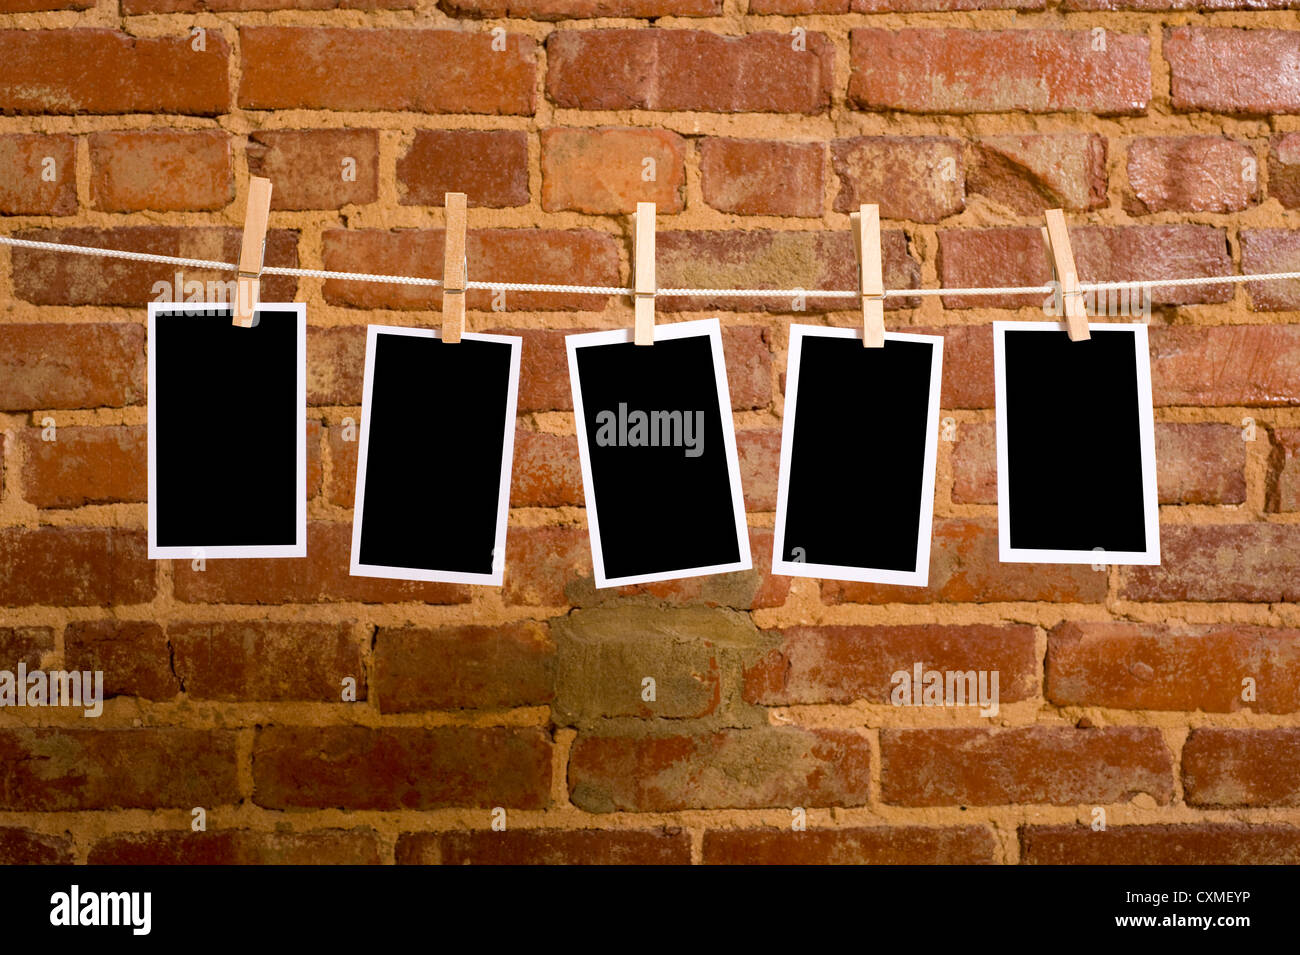 pictures on a rope with clothespins, with clipping path for images, in front of a brick wall - Stock Image